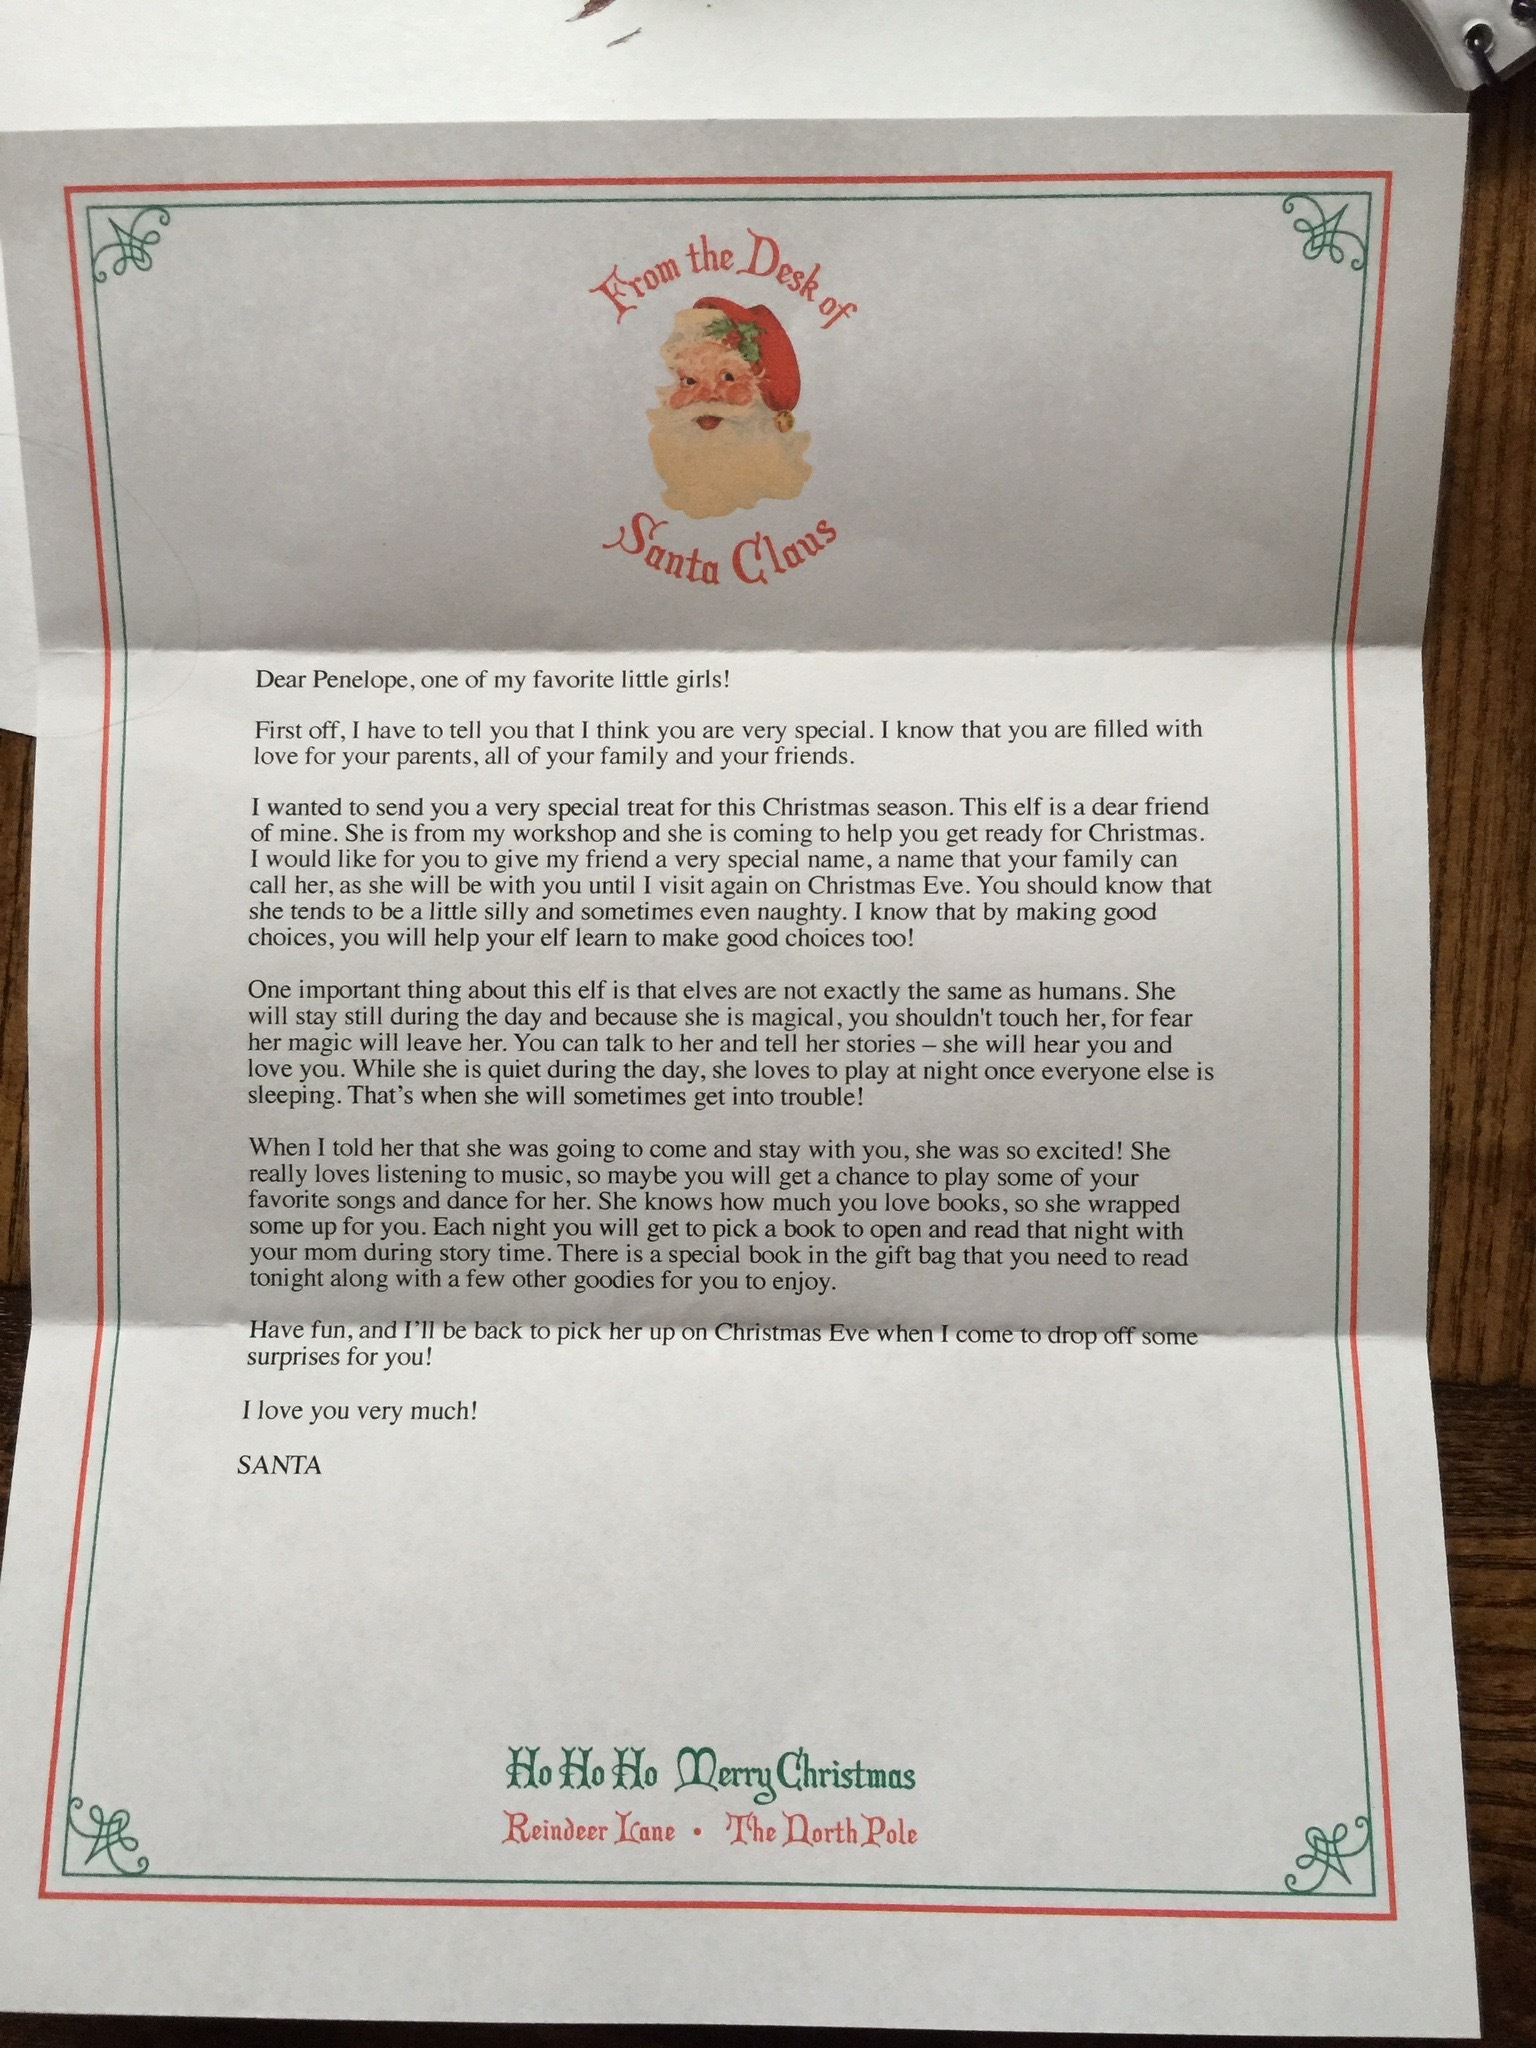 This letter from Santa came with Matilda when she arrived at our house